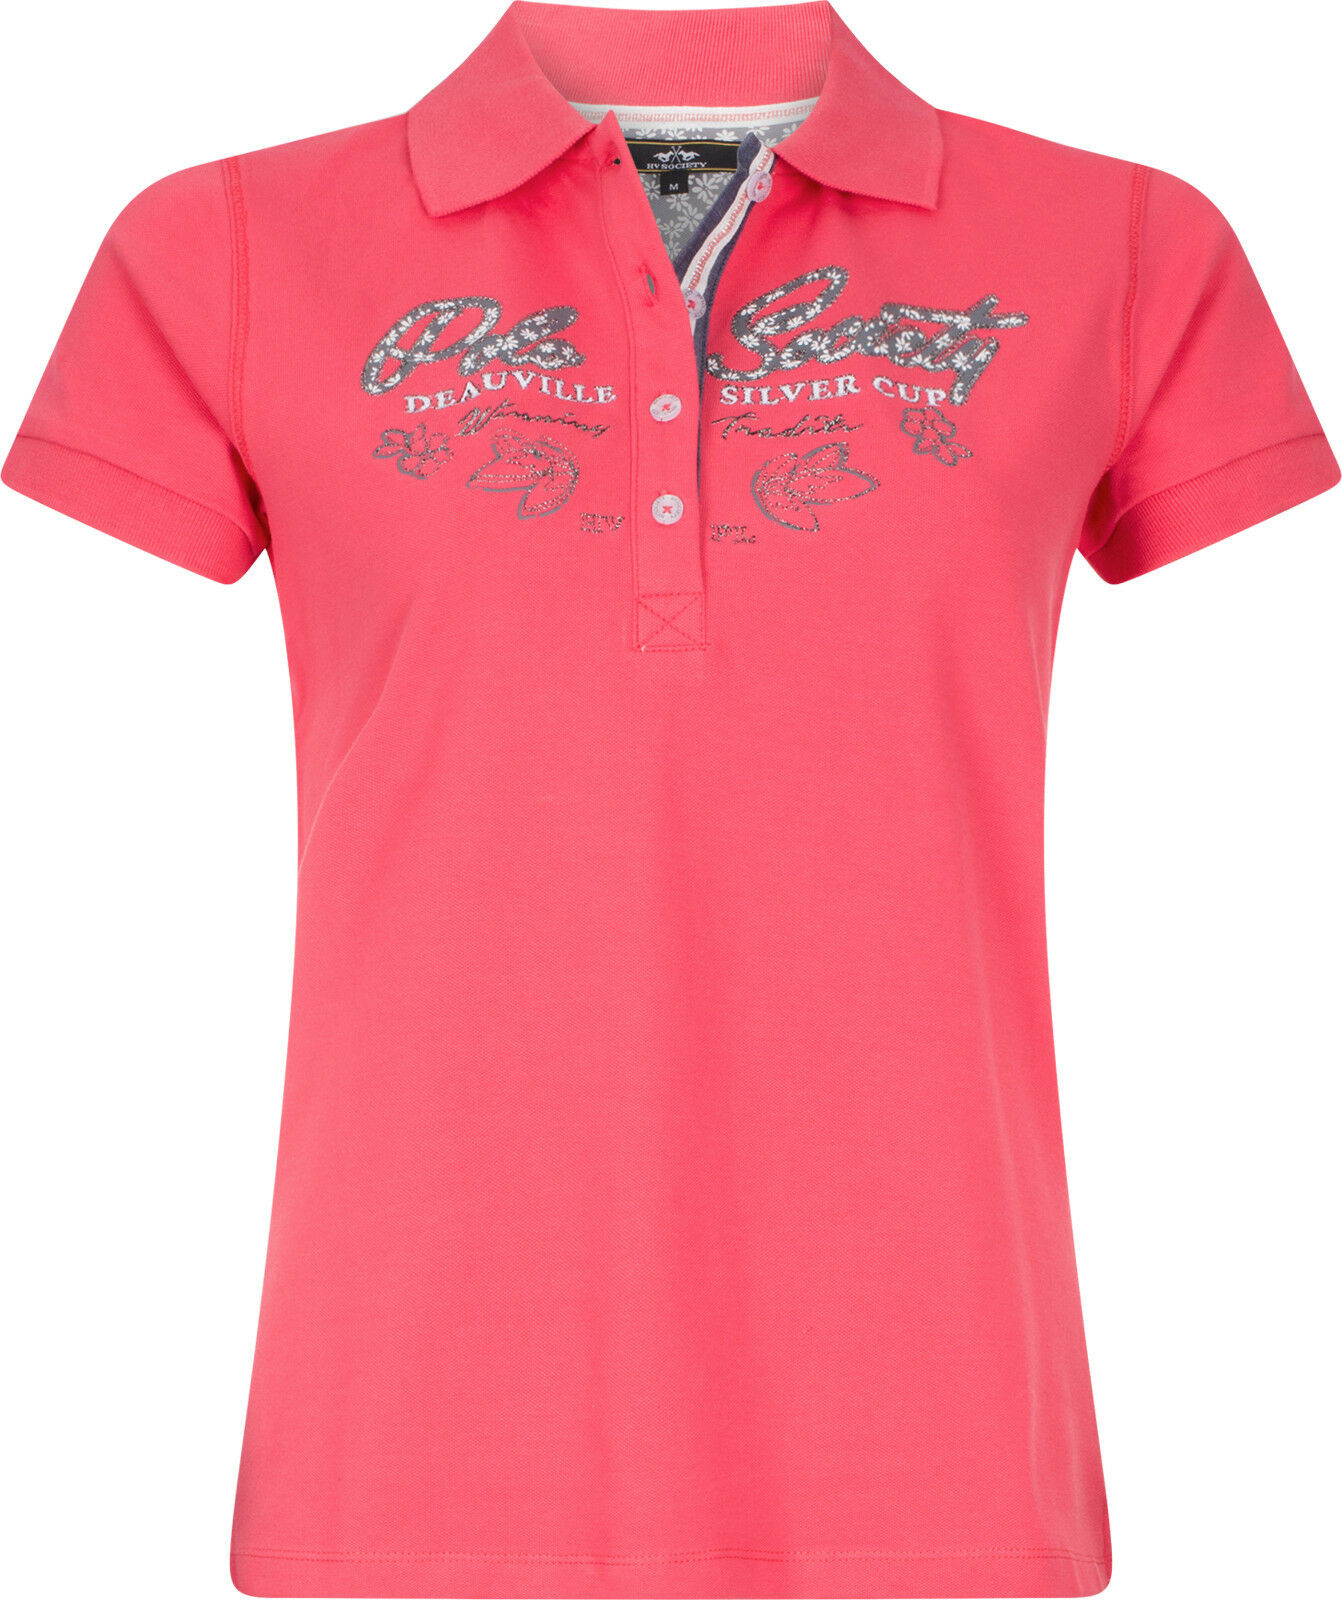 HV polo señora Polo-Shirt Brunelle Raspberry Print + lurex-bordados